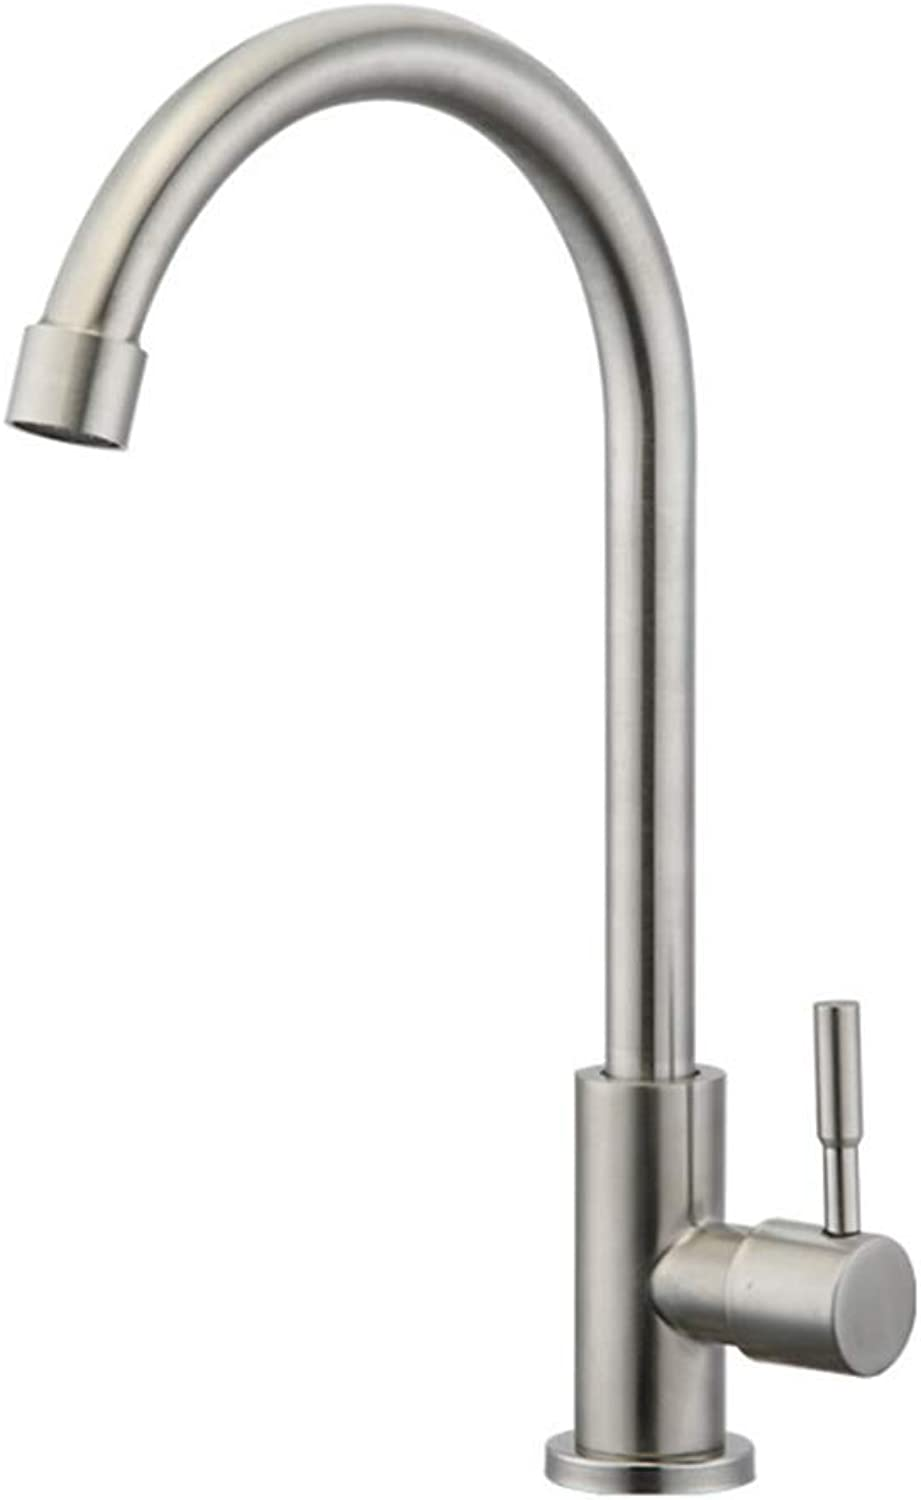 Kitchen Taps Faucet Modern Kitchen Sink Taps Stainless Steel304 Stainless Steel Cold and Hot Basin Faucet Washbasin Faucet Washbasin Faucet Washbasin Table Basin Single Hole Faucet